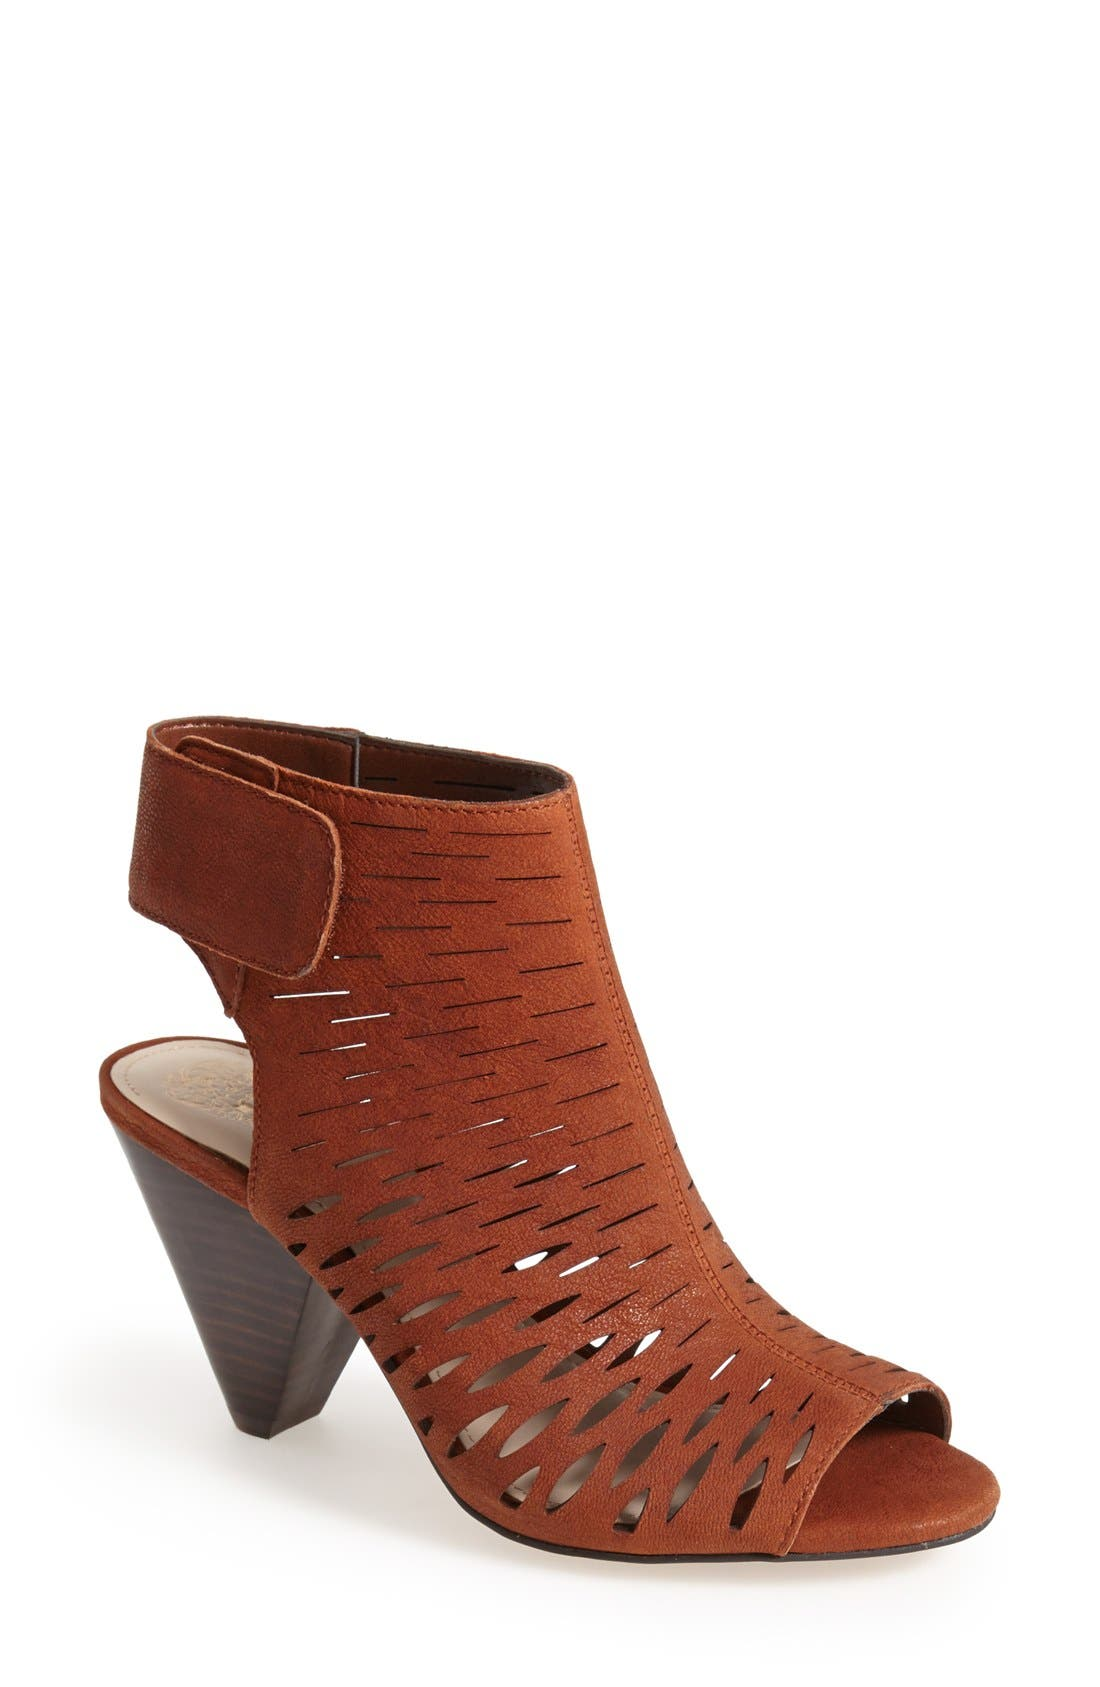 'Estell' Open Toe Bootie,                             Main thumbnail 1, color,                             Dark Brown